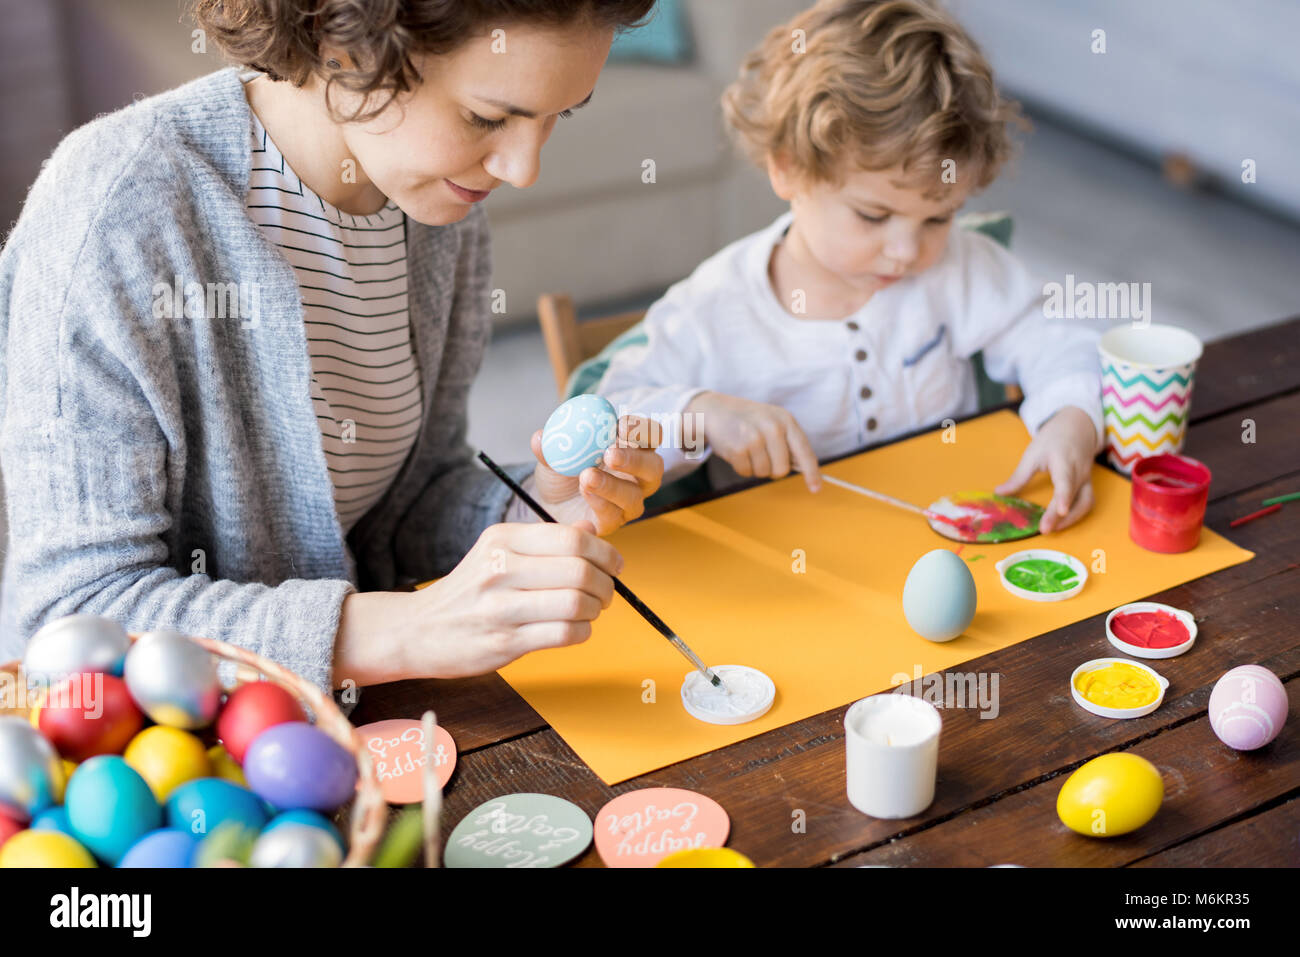 Family Painting Easter Eggs - Stock Image